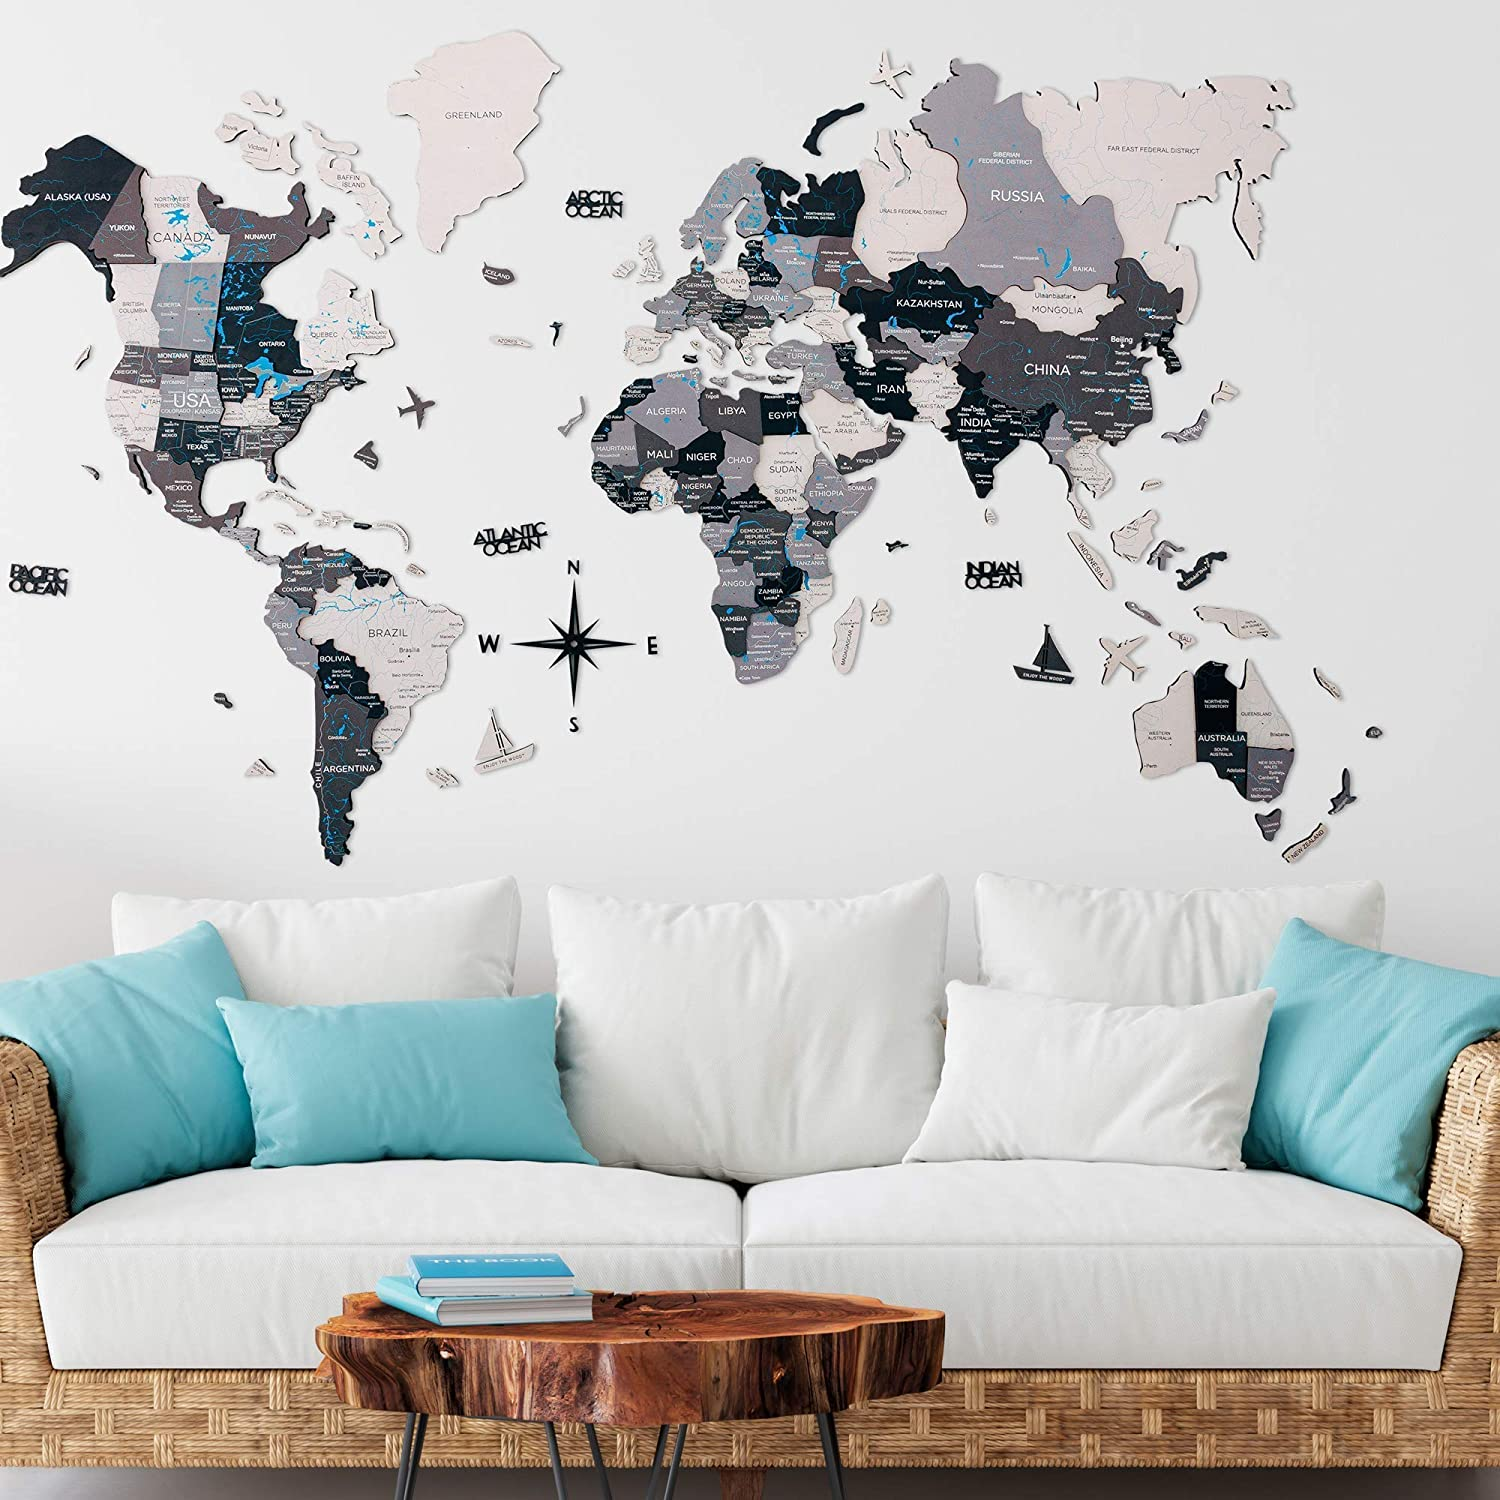 Home Decor 3D Wood World Map Wall Art. Large Wall Decor - World Travel Map All Sizes (M,L,XL,XXL). Any Occasion Gift Idea - Wall Art For Home & Kitchen or Office